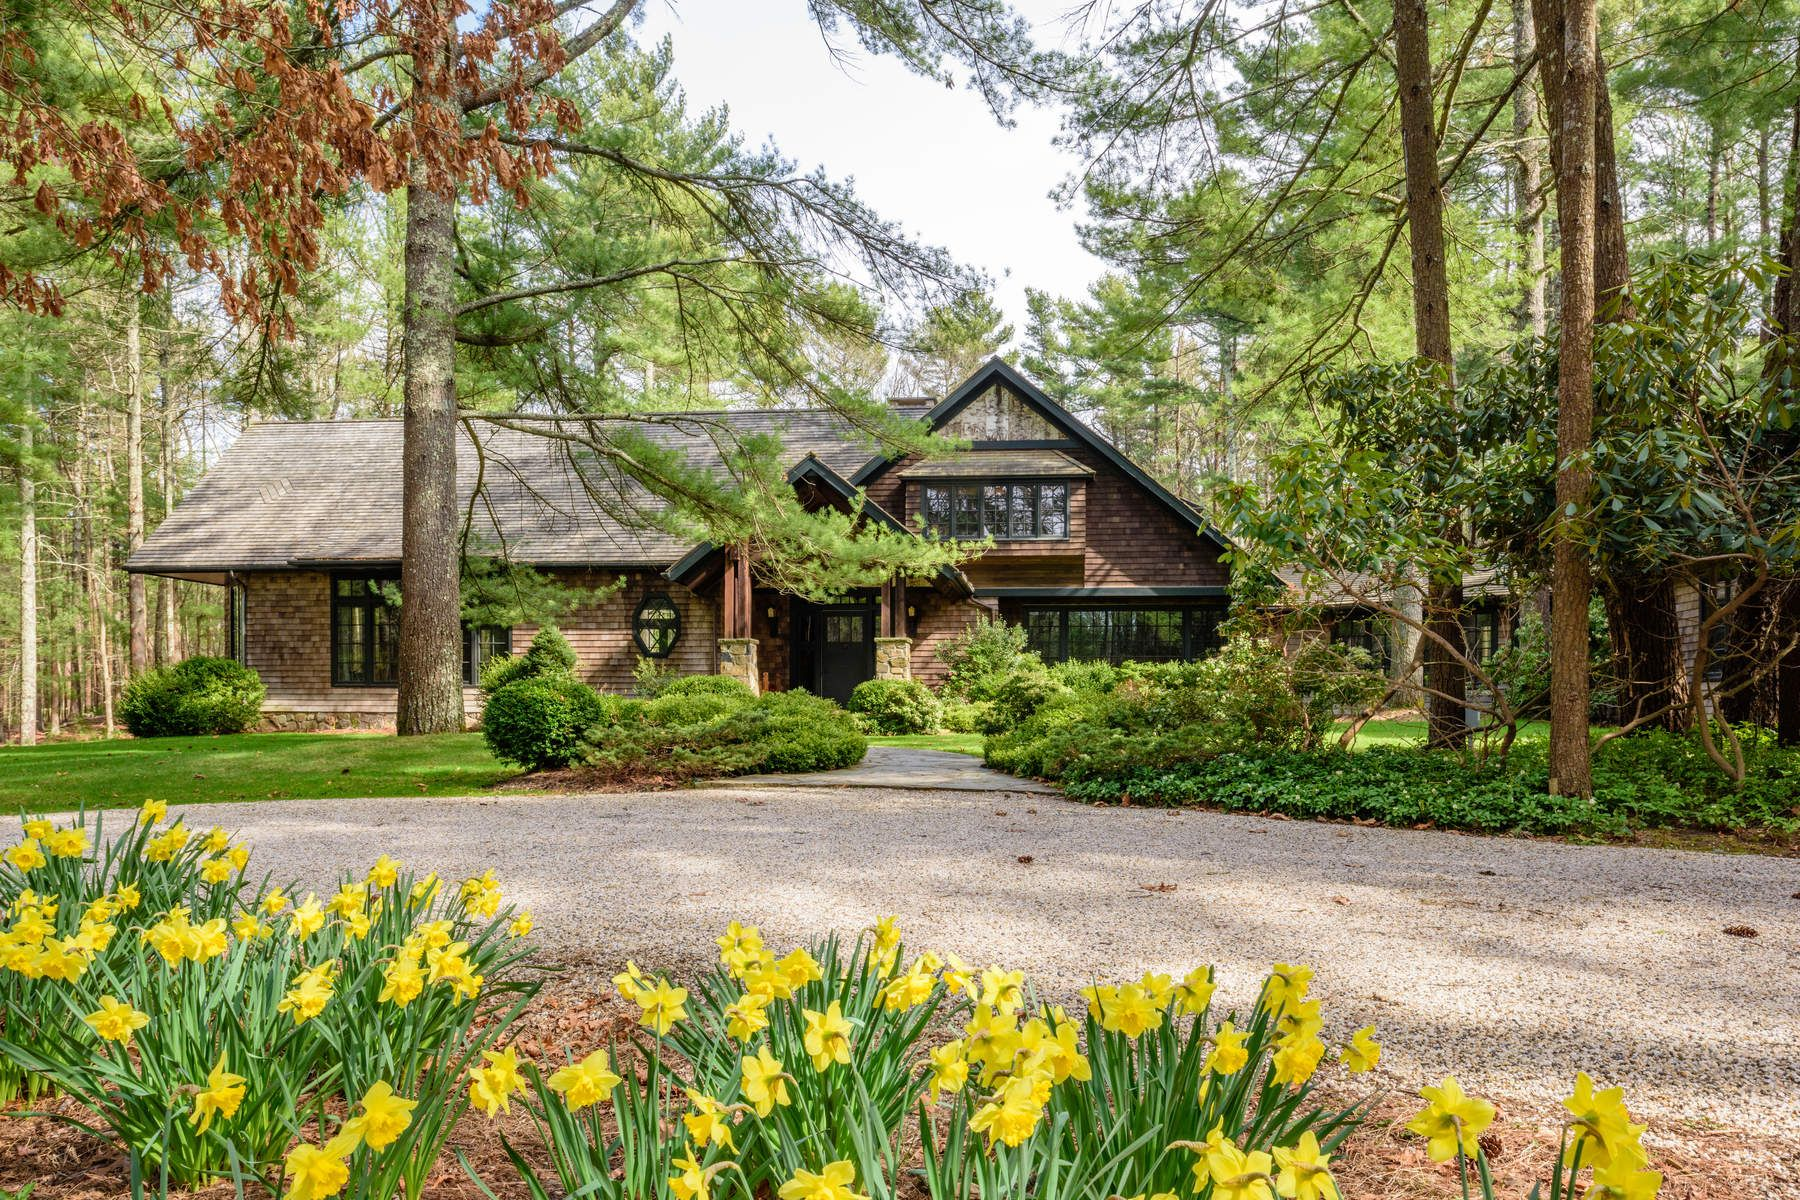 Single Family Home for Rent at ONE-OF-A-KIND ON 5.6+/- ACRES East Hampton, New York 11937 United States